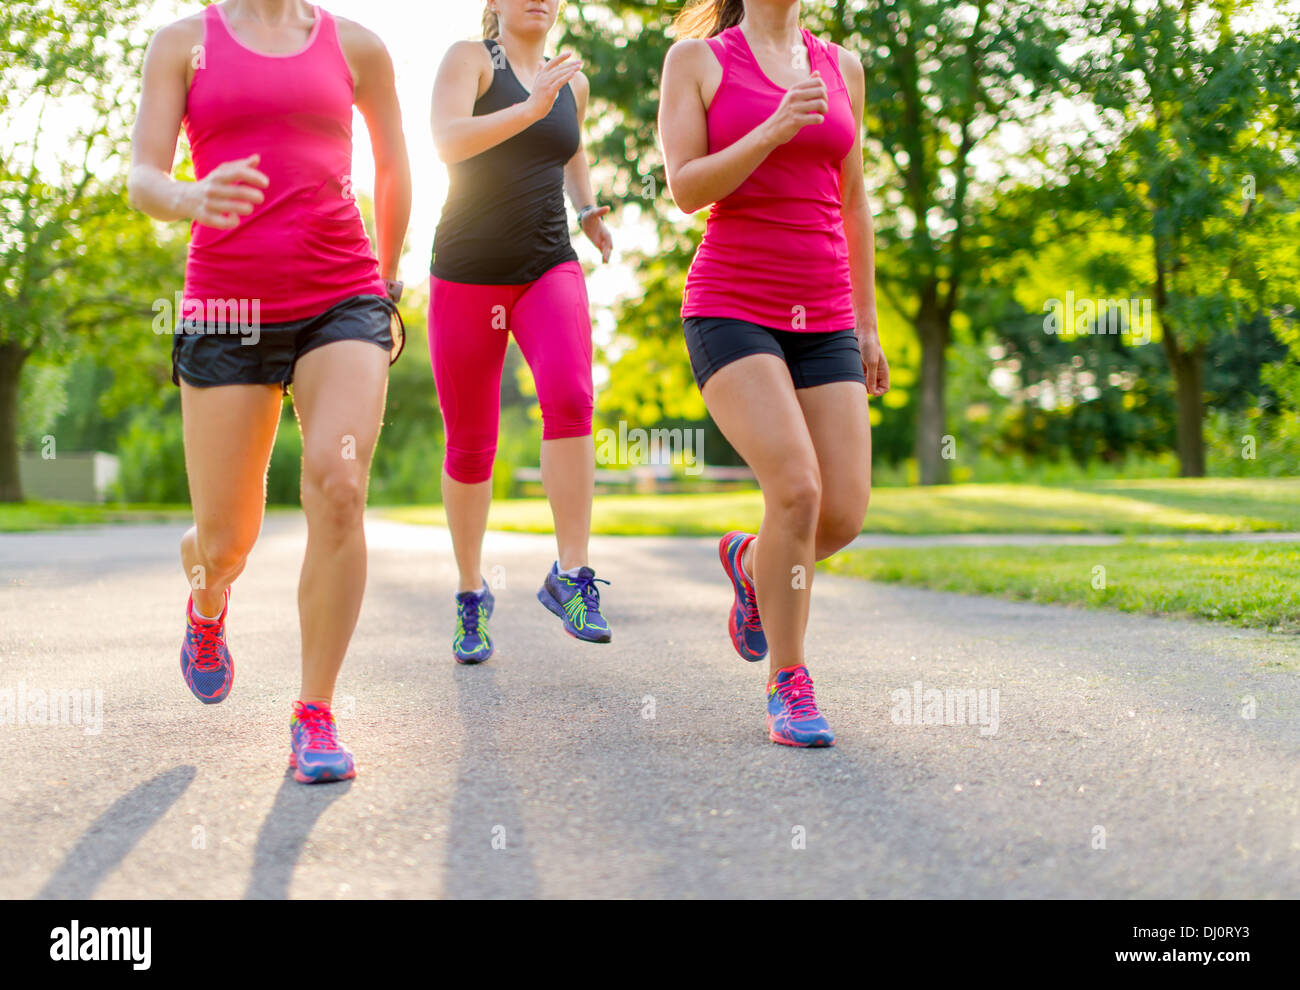 group of healthy girls running outdoors at sunset with lens flare. - Stock Image